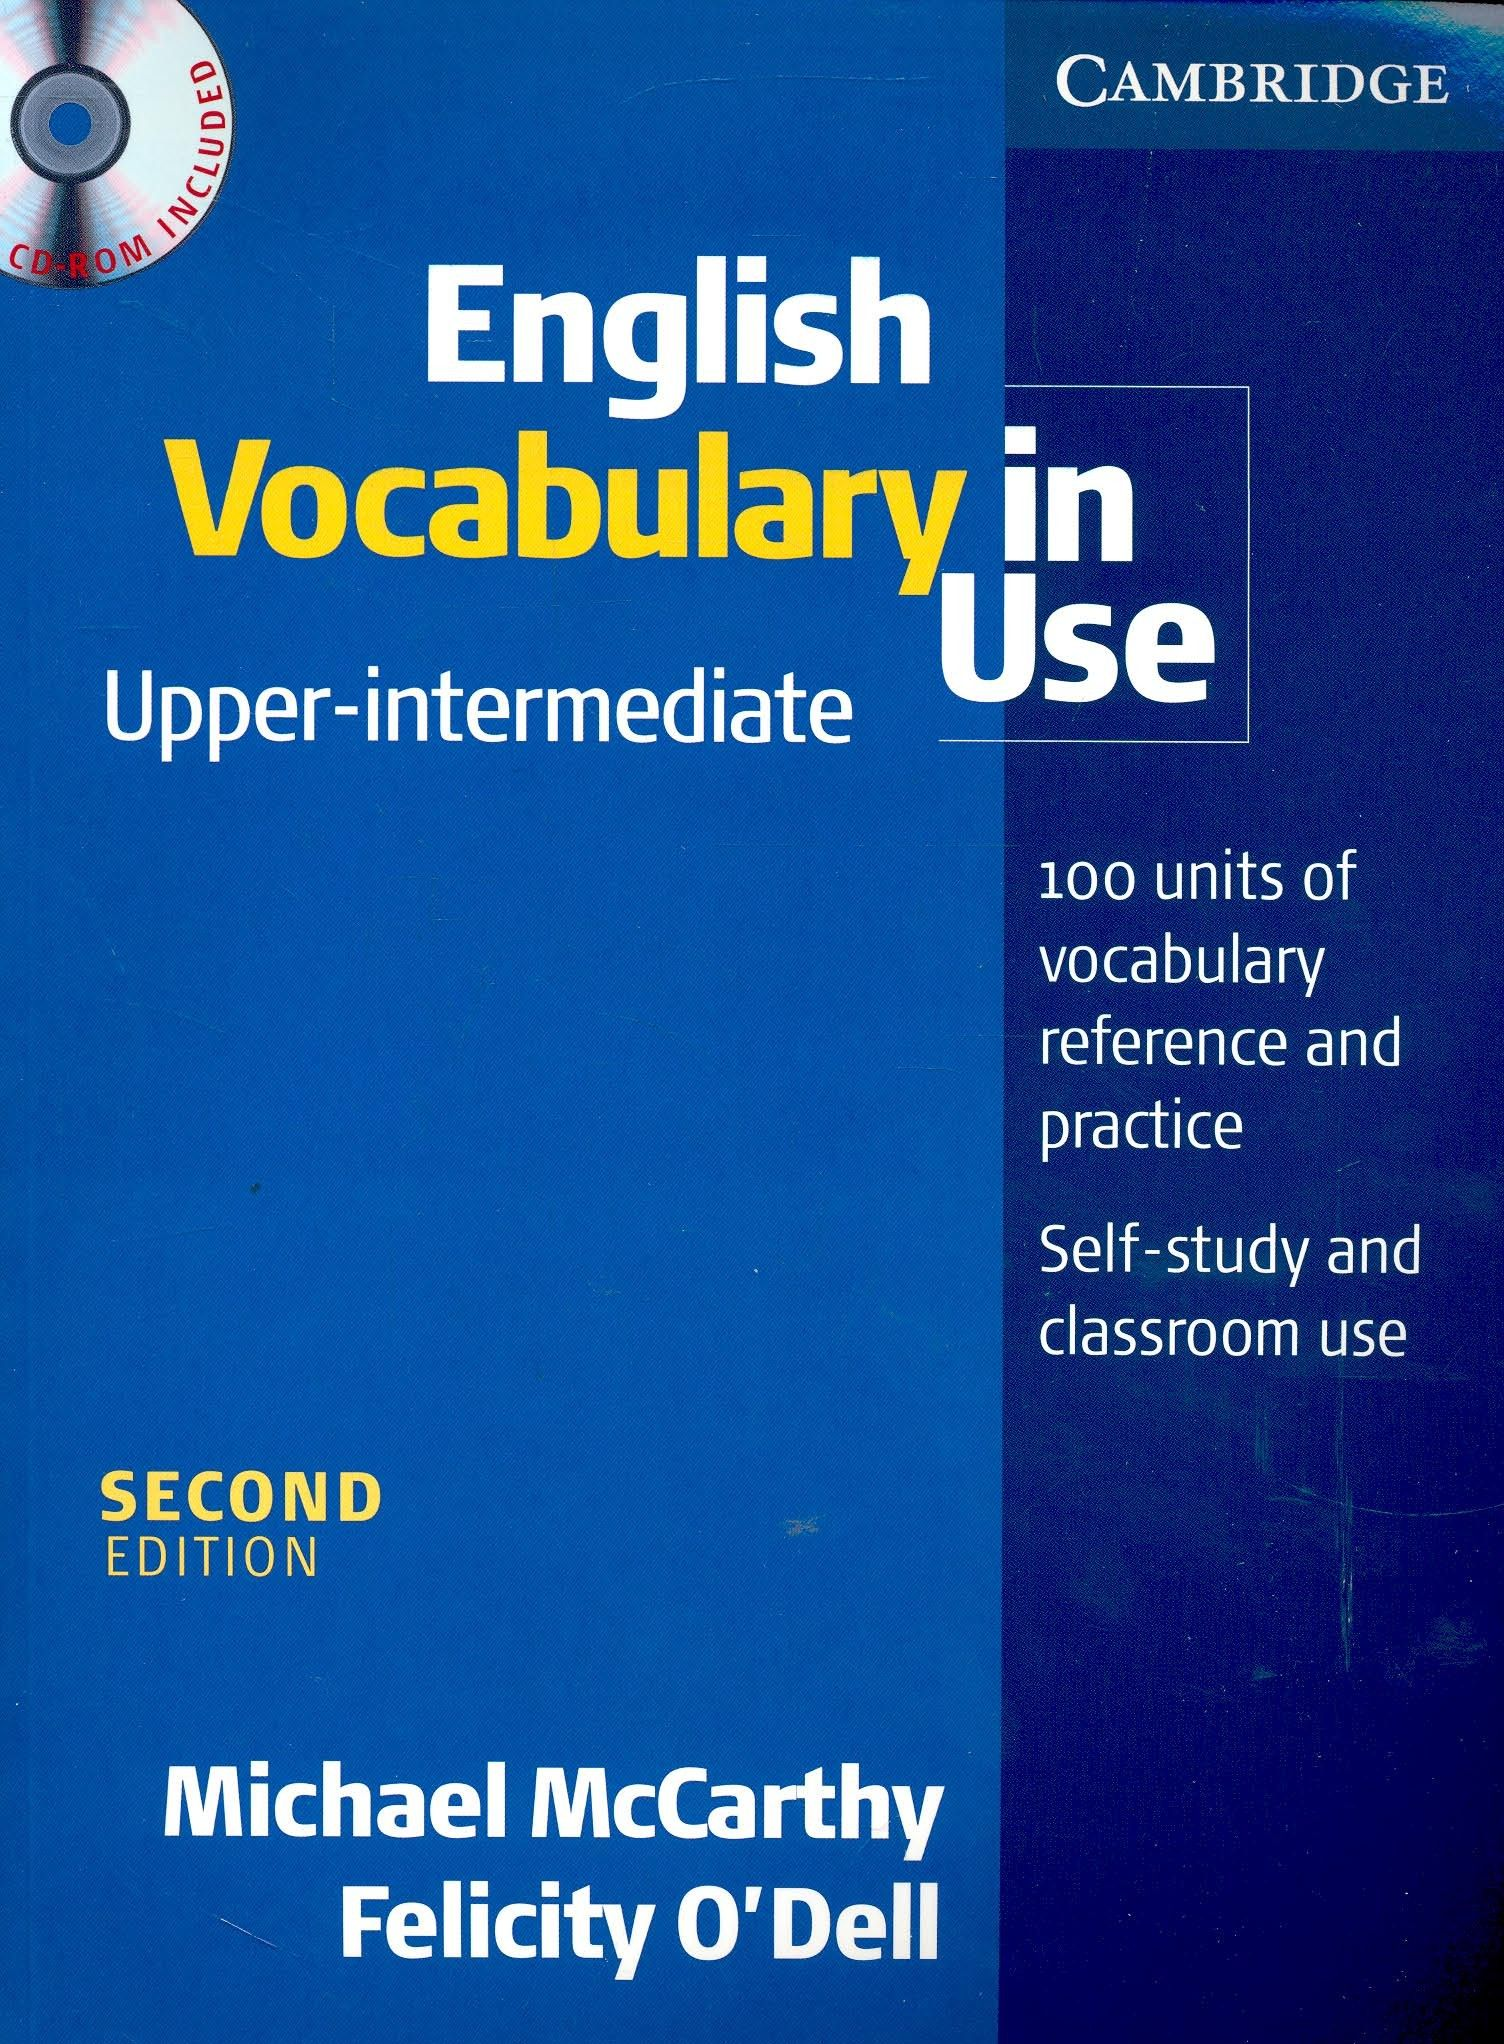 Spoken English Pdf - download.cnet.com